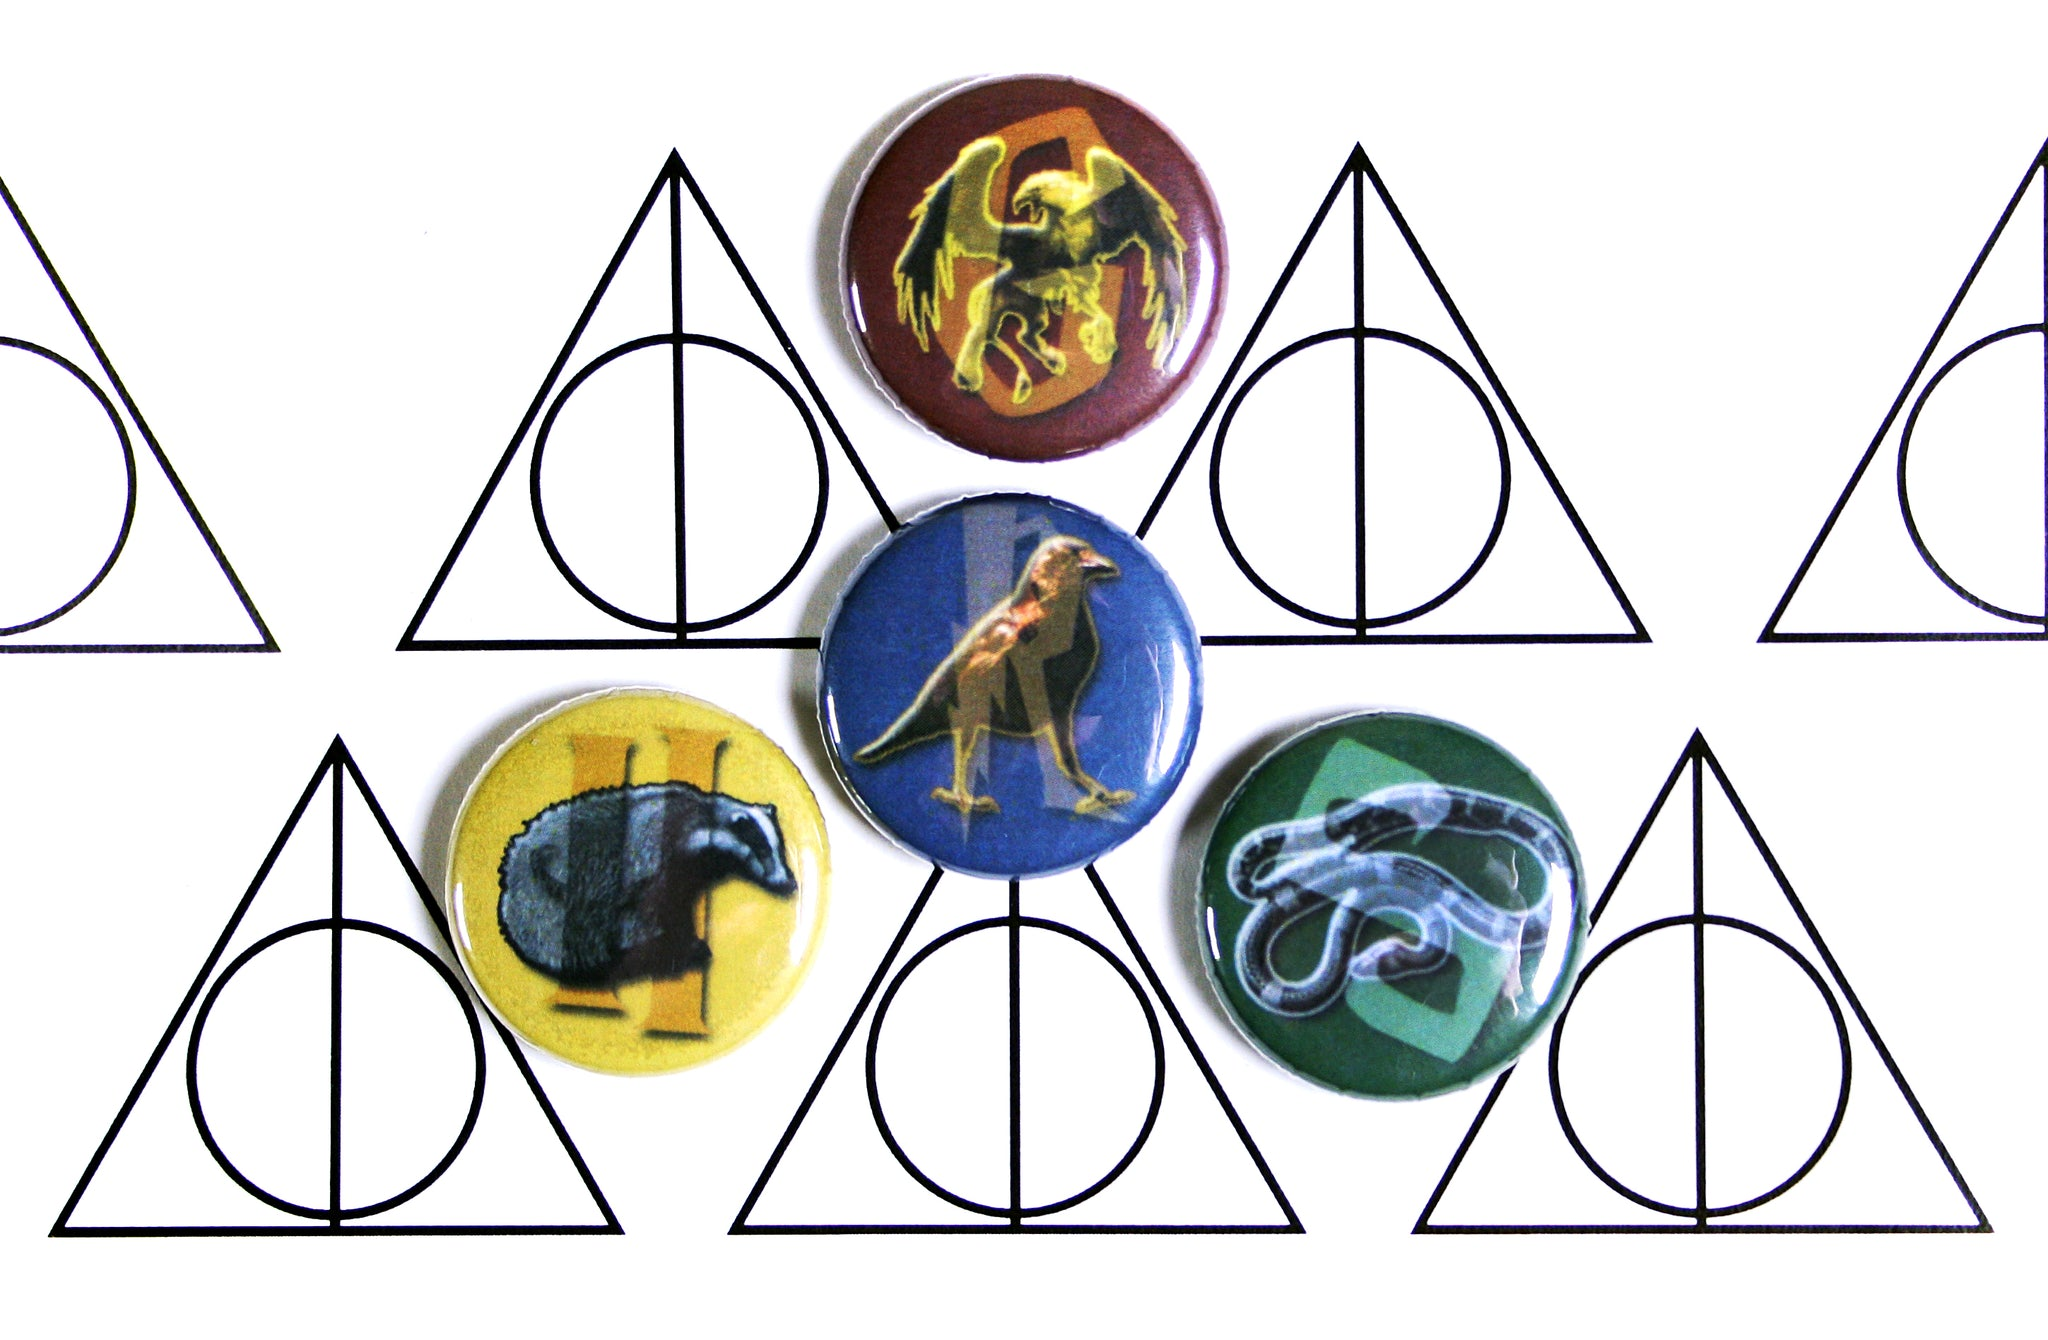 custom harry potter hogwarts house buttons